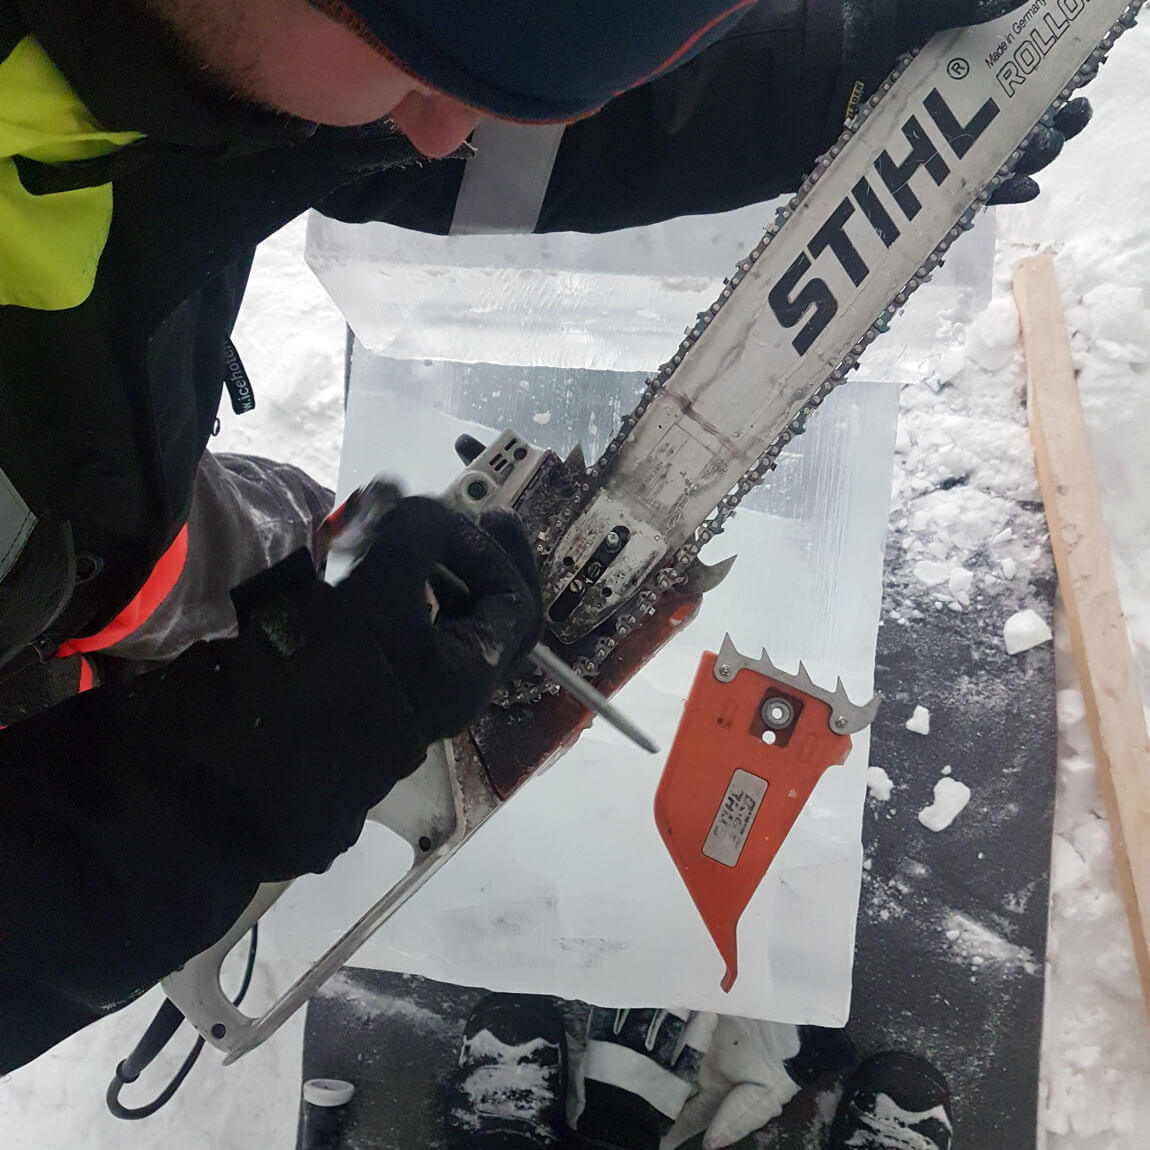 Ice and cold temperatures can be a tricky combination, as the chainsaw stops working. Constructing the ICEHOTEL is not easy task!